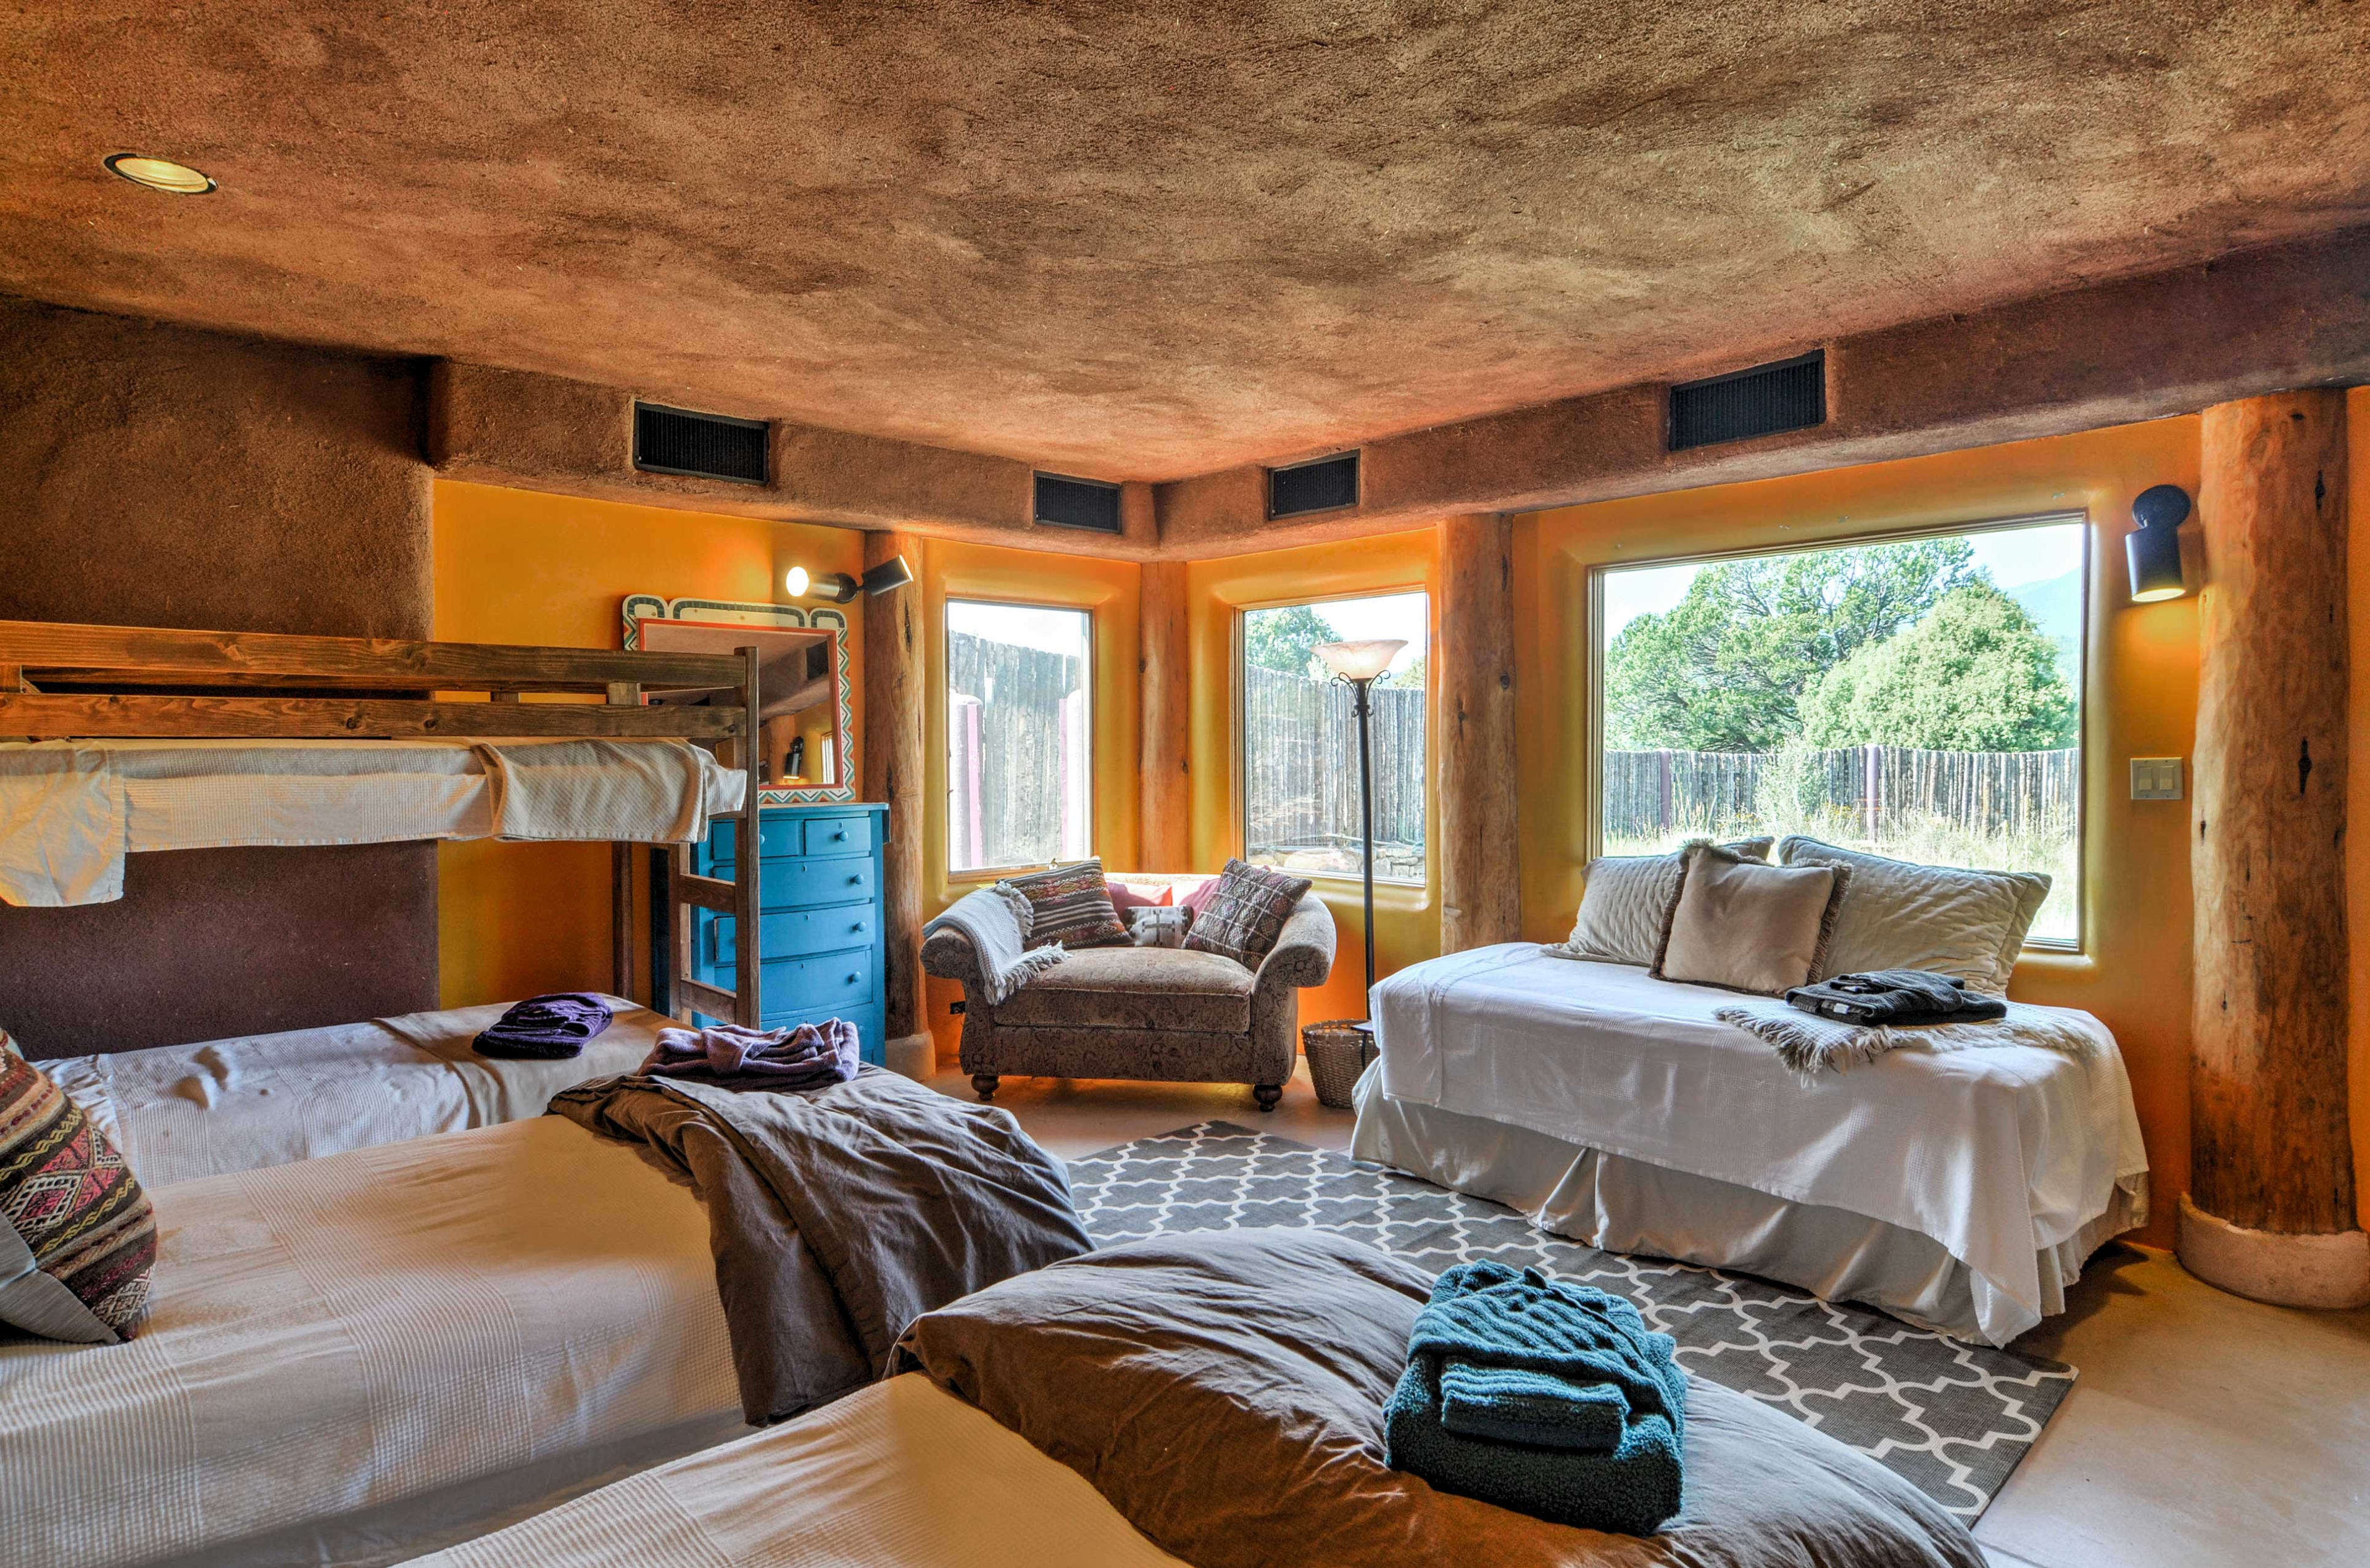 The Kestrel room sleeps 5 and is great for groups or kids!